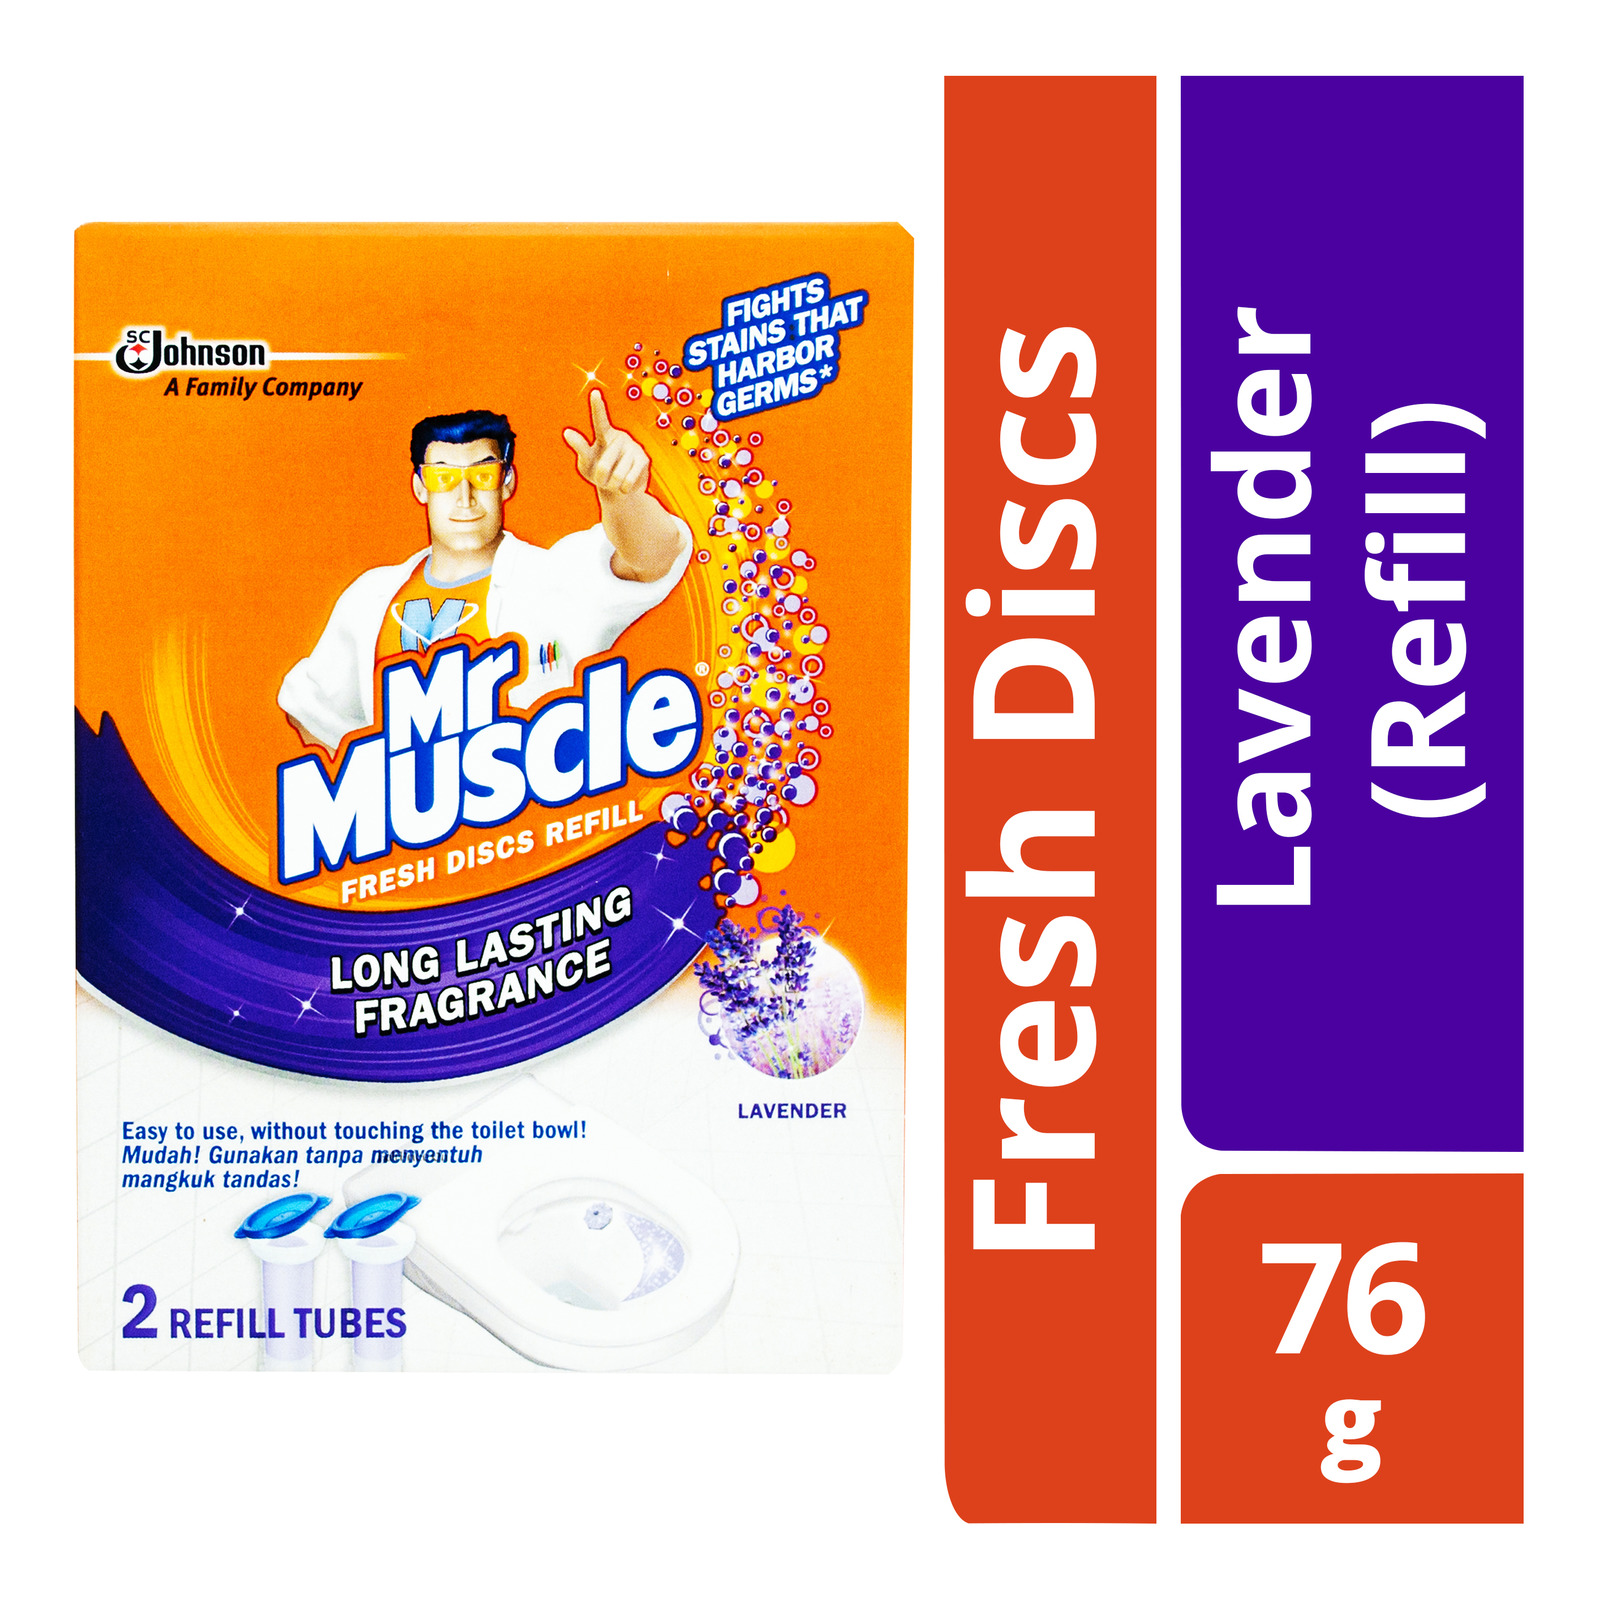 Mr Muscle Fresh Discs Refill - Lavender